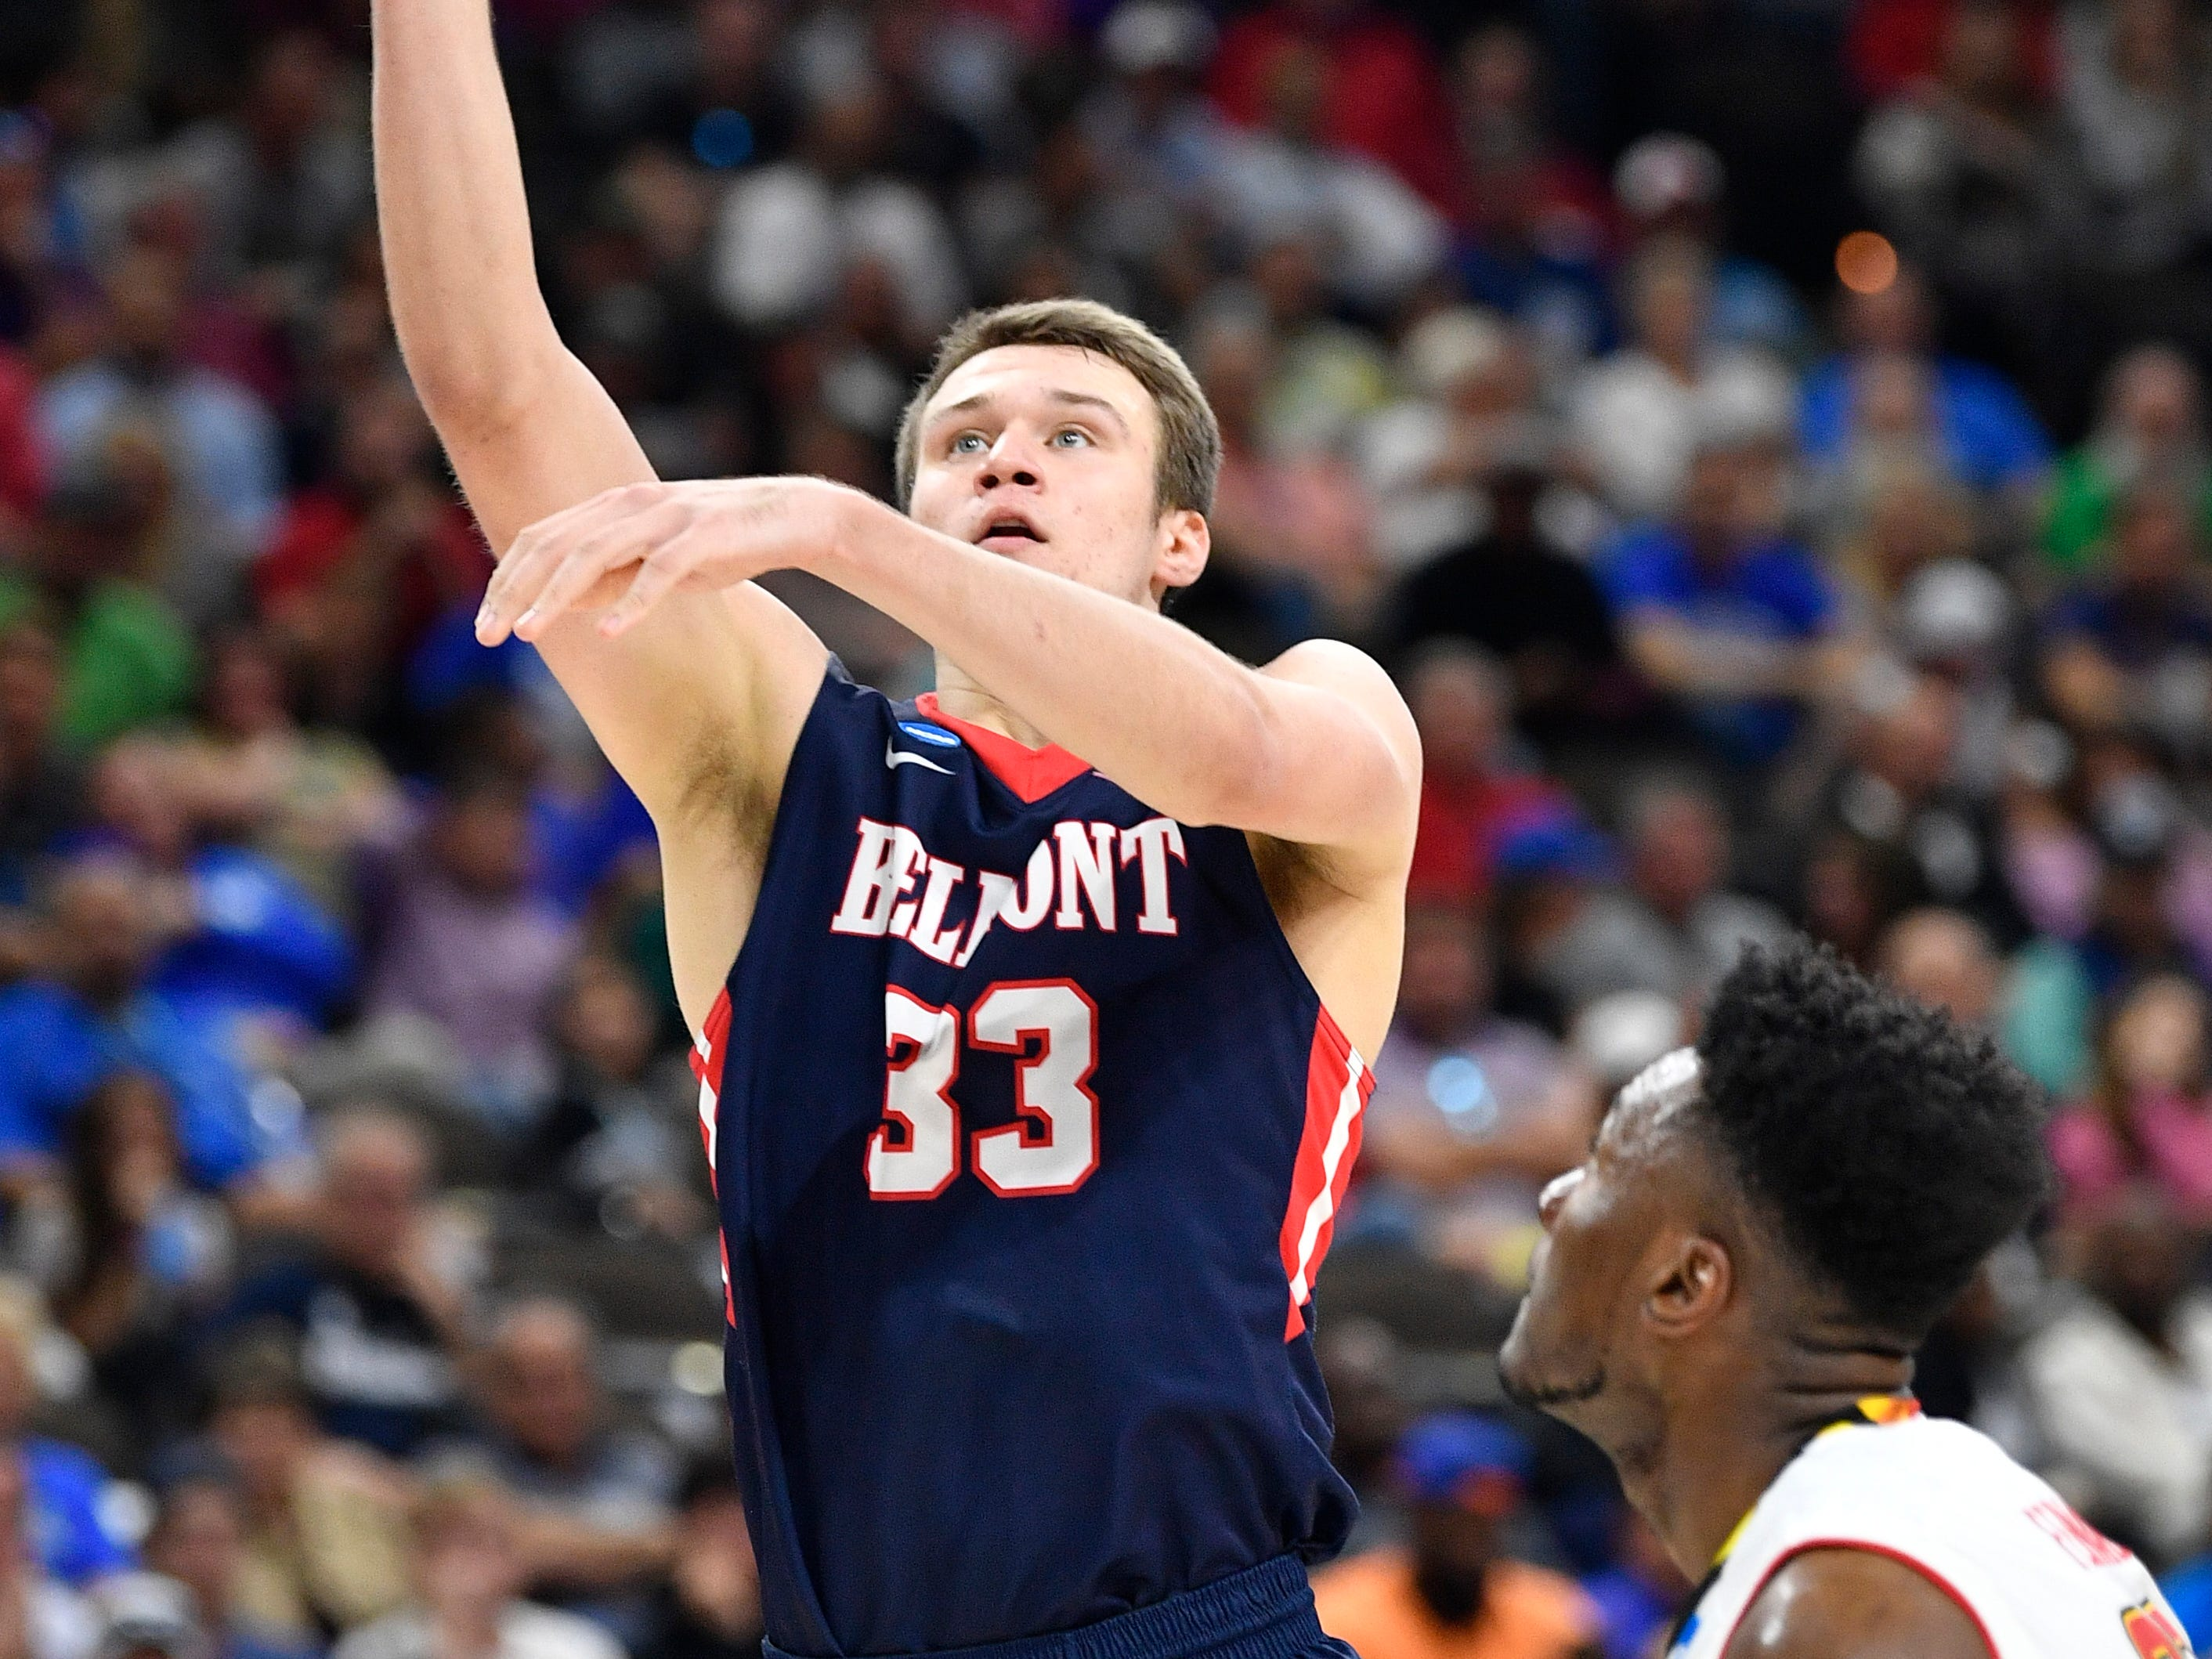 Belmont center Nick Muszynski (33) shoots against Maryland forward Bruno Fernando (23) during the first half of the first-round NCAA college basketball tournament game at VyStar Veterans Memorial Arena in Jacksonville, Fla., Thursday, March 21, 2019.